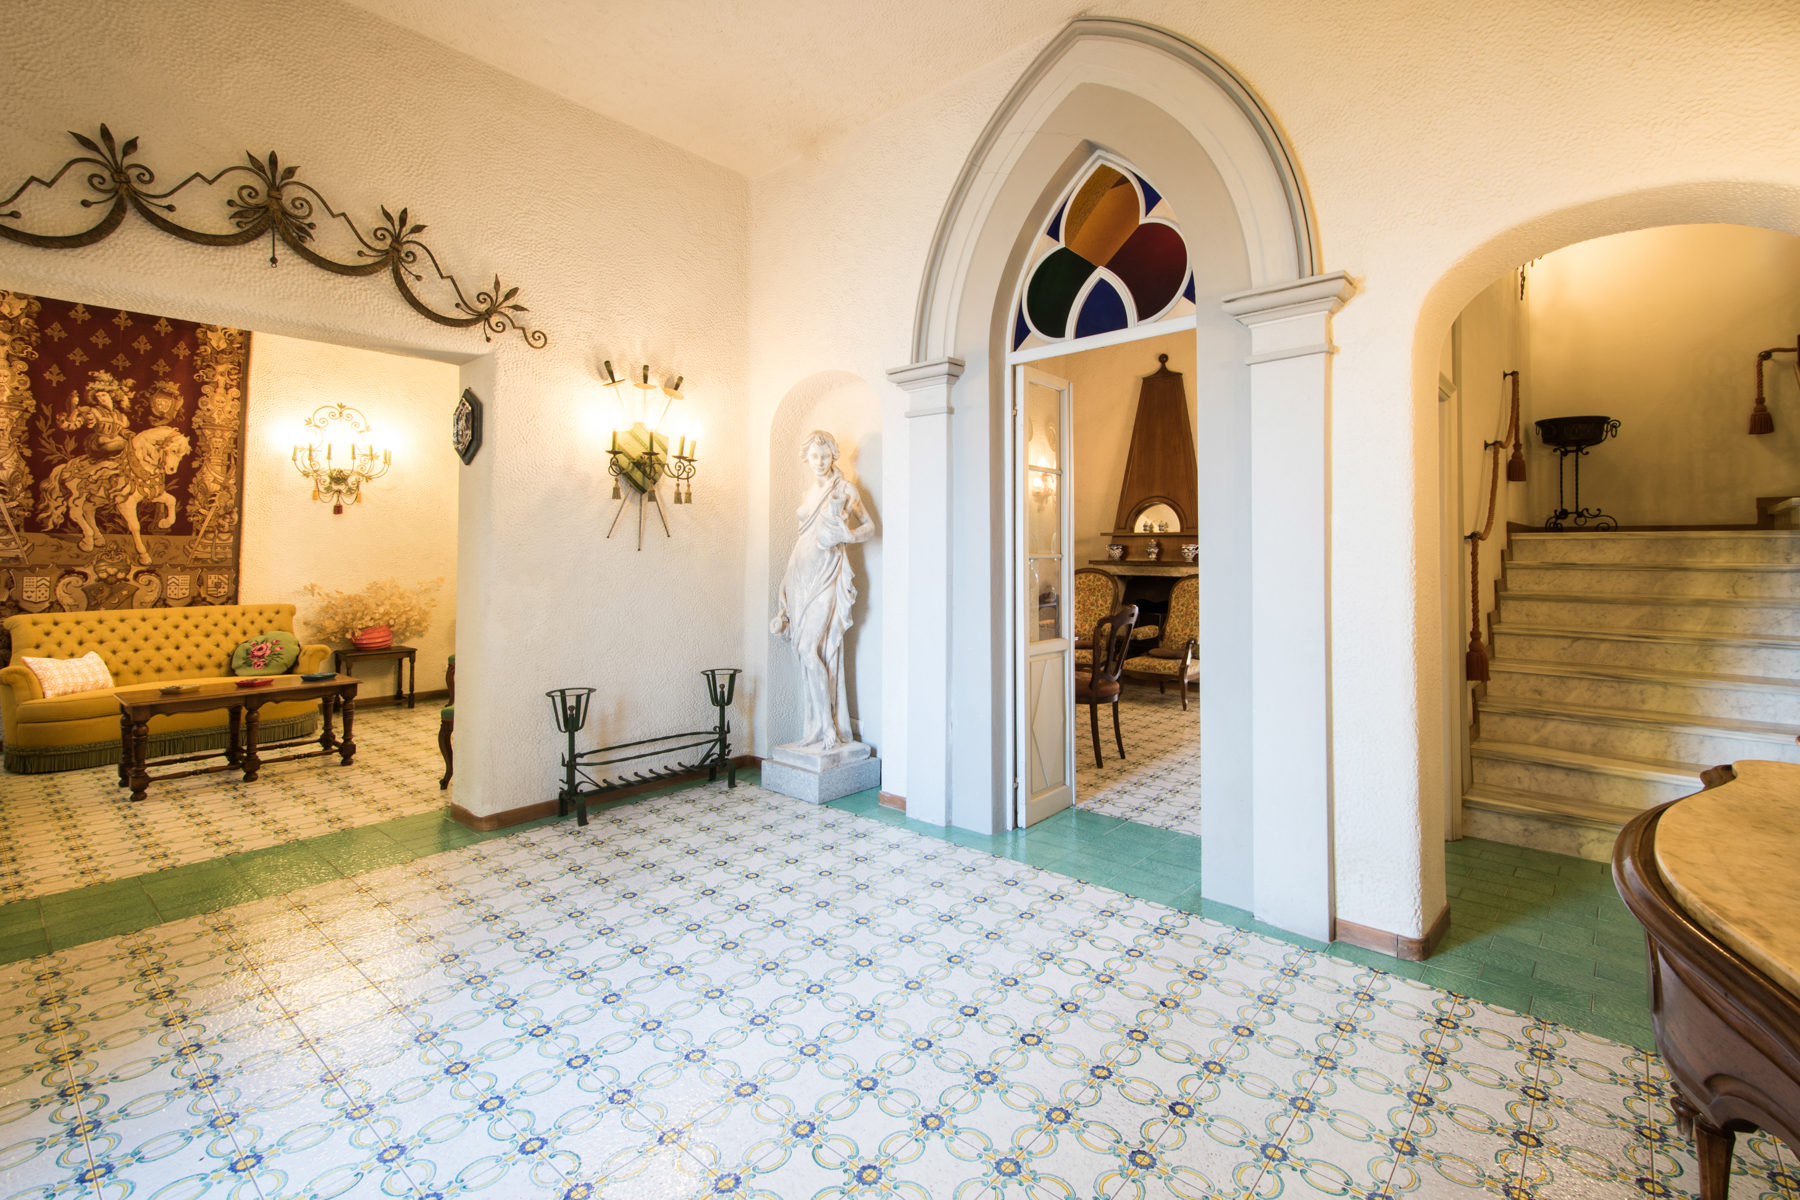 Additional photo for property listing at Beautiful Napoleon-era mansion in Elba Marciana Marina Marciana Marina, Livorno 57033 Italie